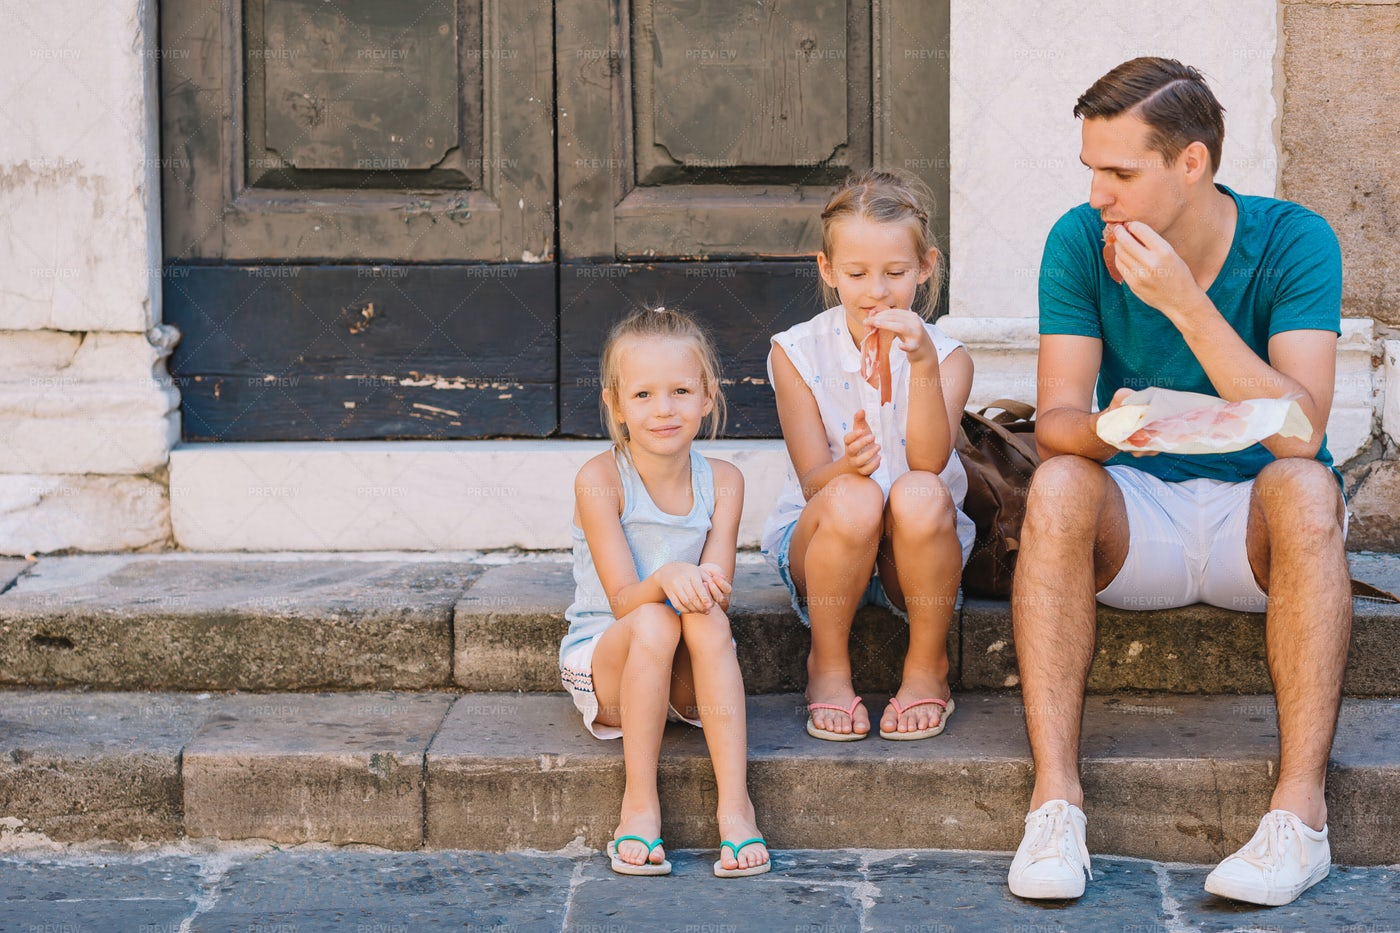 Snacking On The Steps: Stock Photos